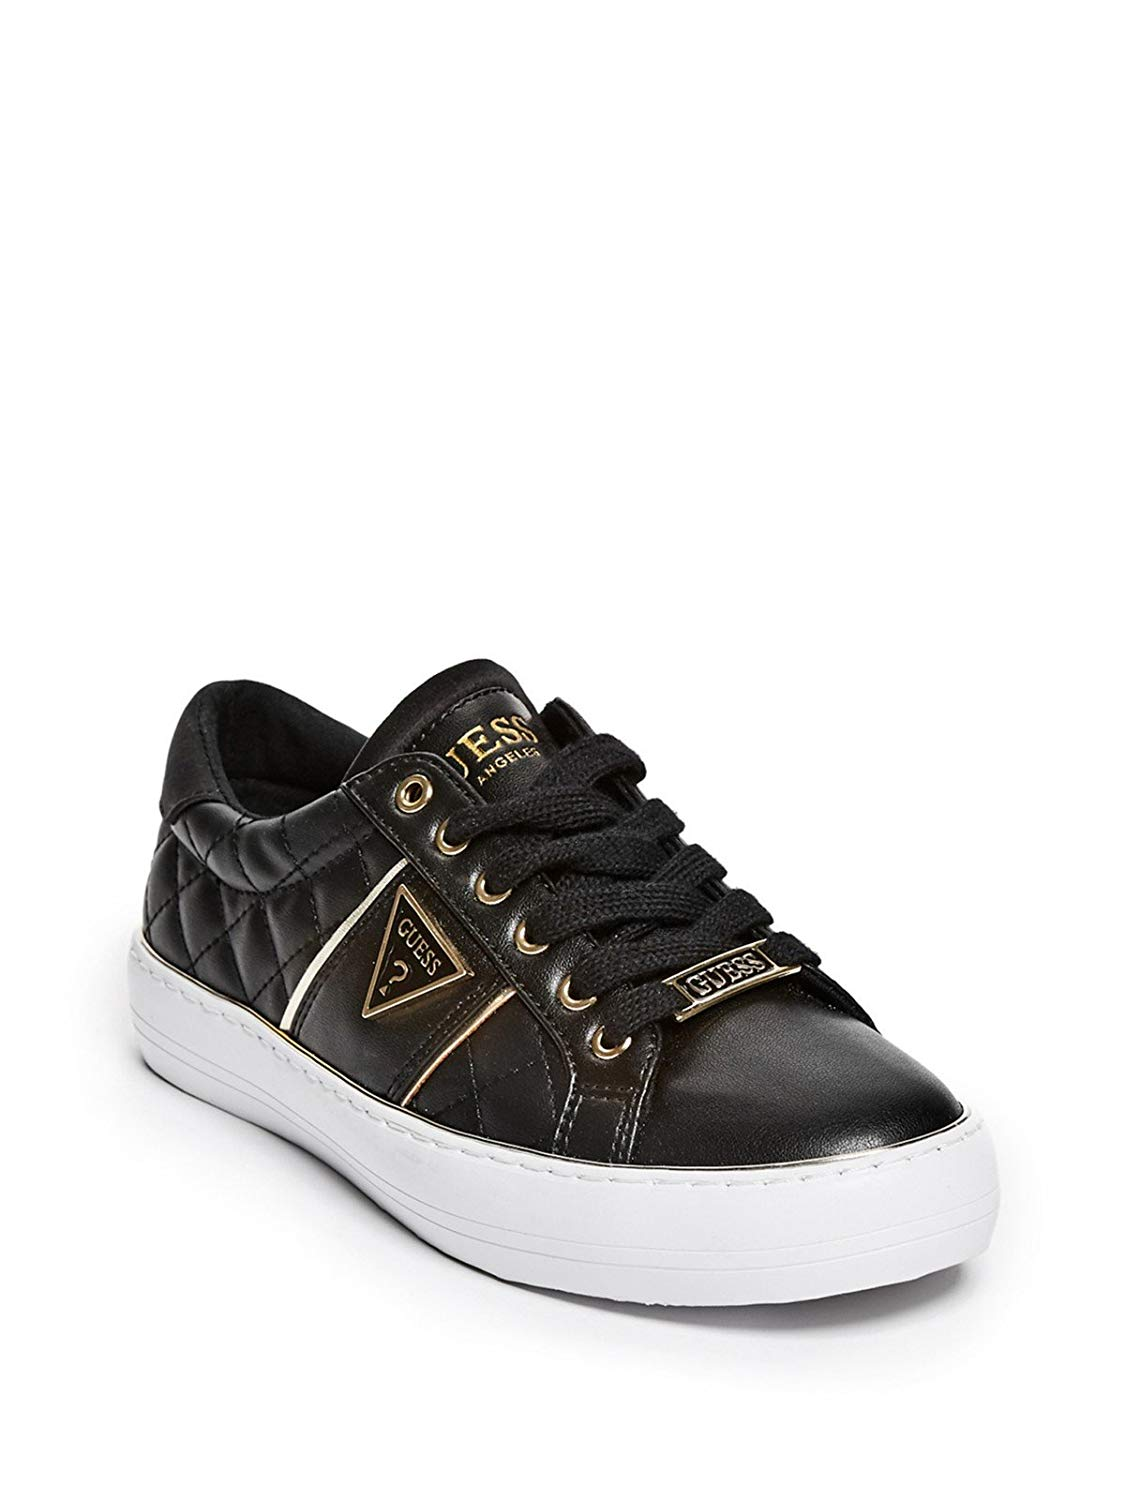 57e6777f57fe5 Get Quotations · GUESS Factory Women s Gilda Quilted Leather Low-Top  Sneakers